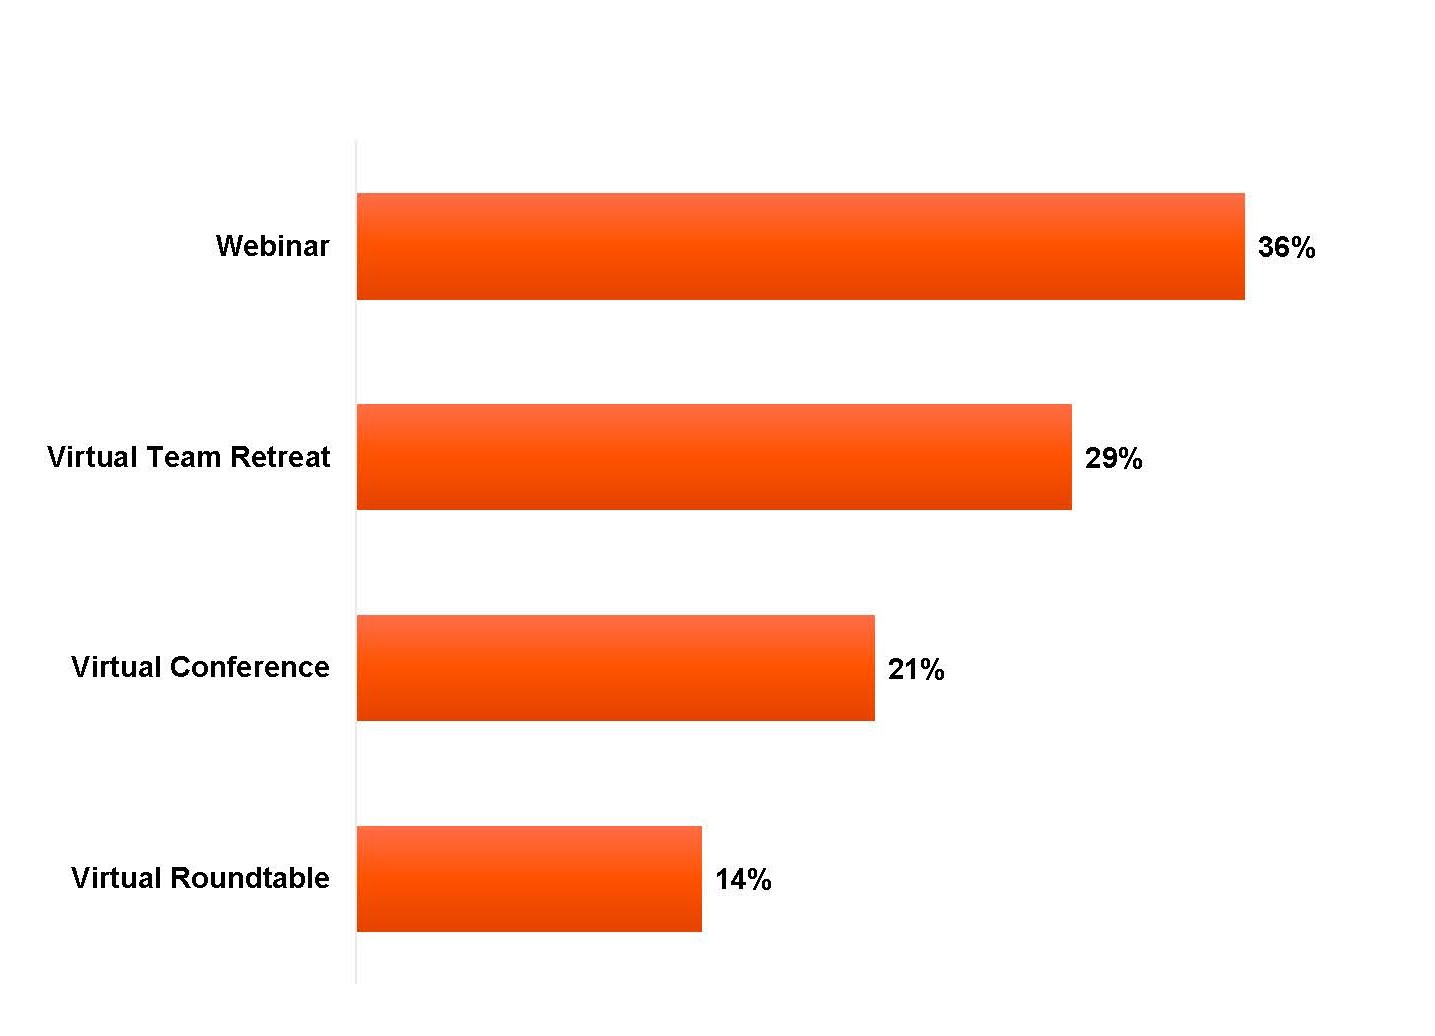 bar chart virtual event type by popularity